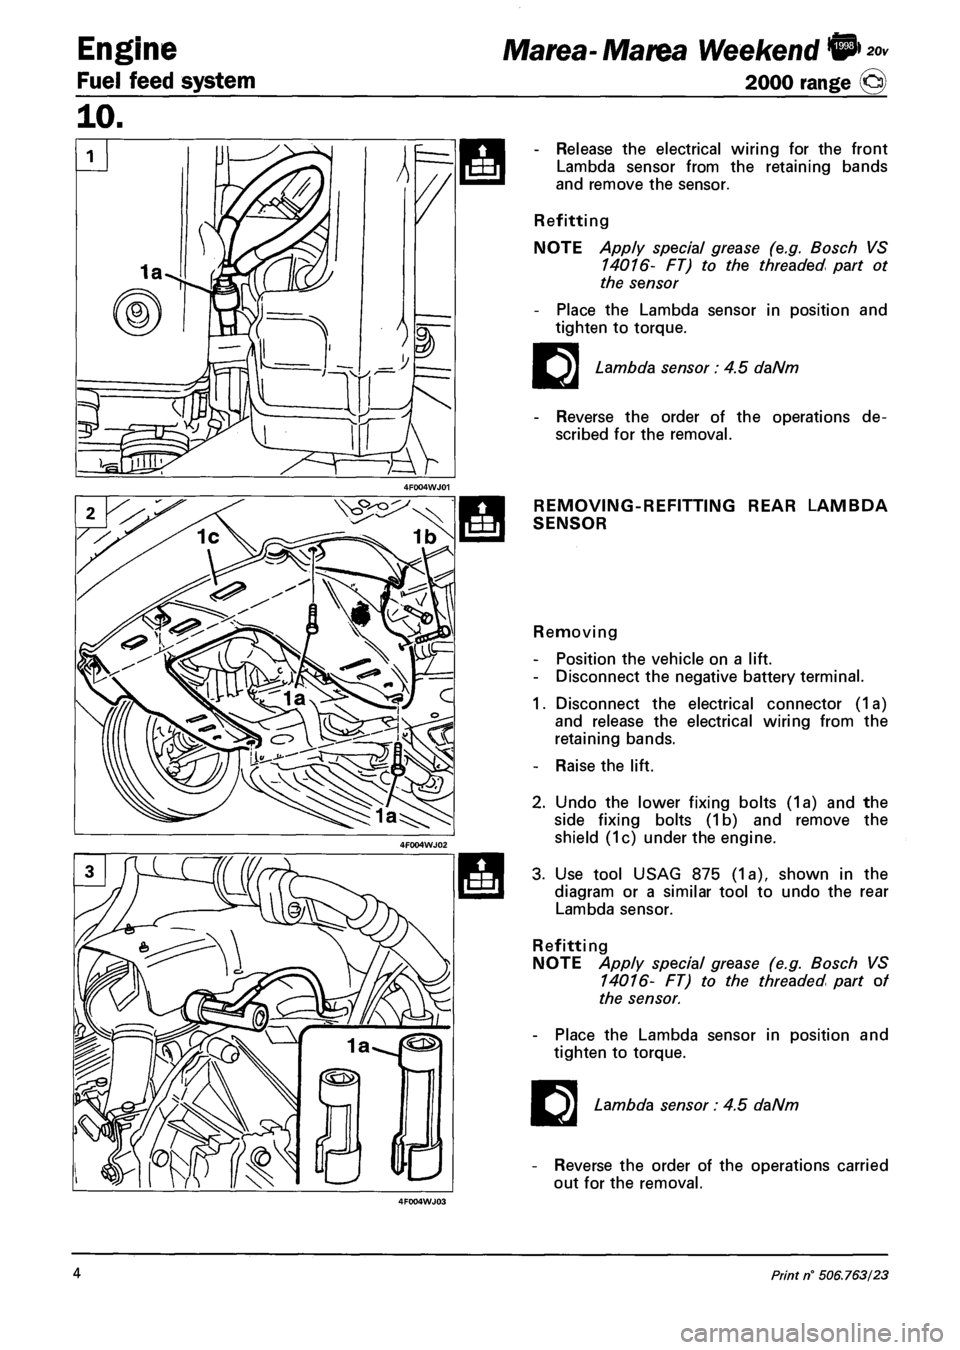 Fiat Marea 2001 1g Workshop Manual Vacuum Diagram